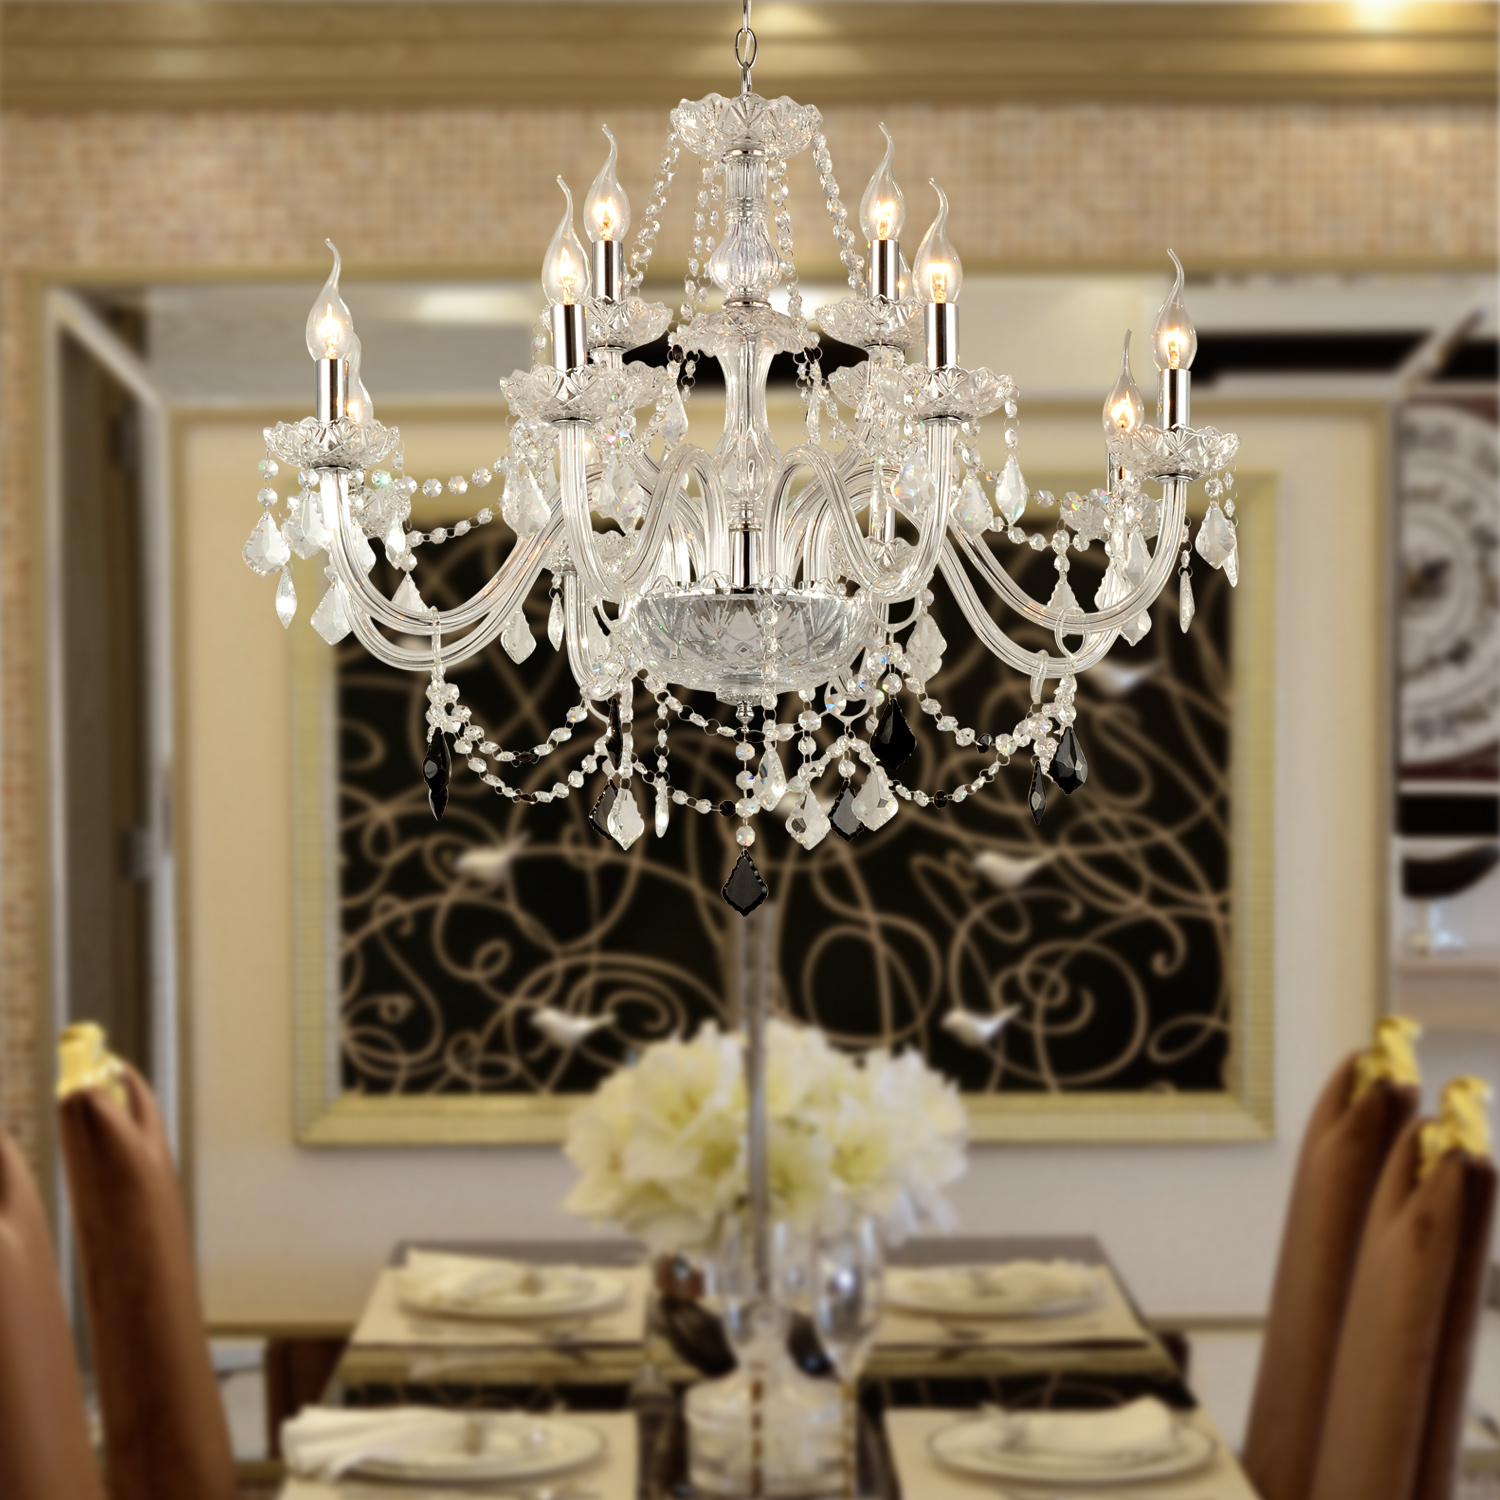 venetian murano style crystal chandelier kitchen foyer dining room